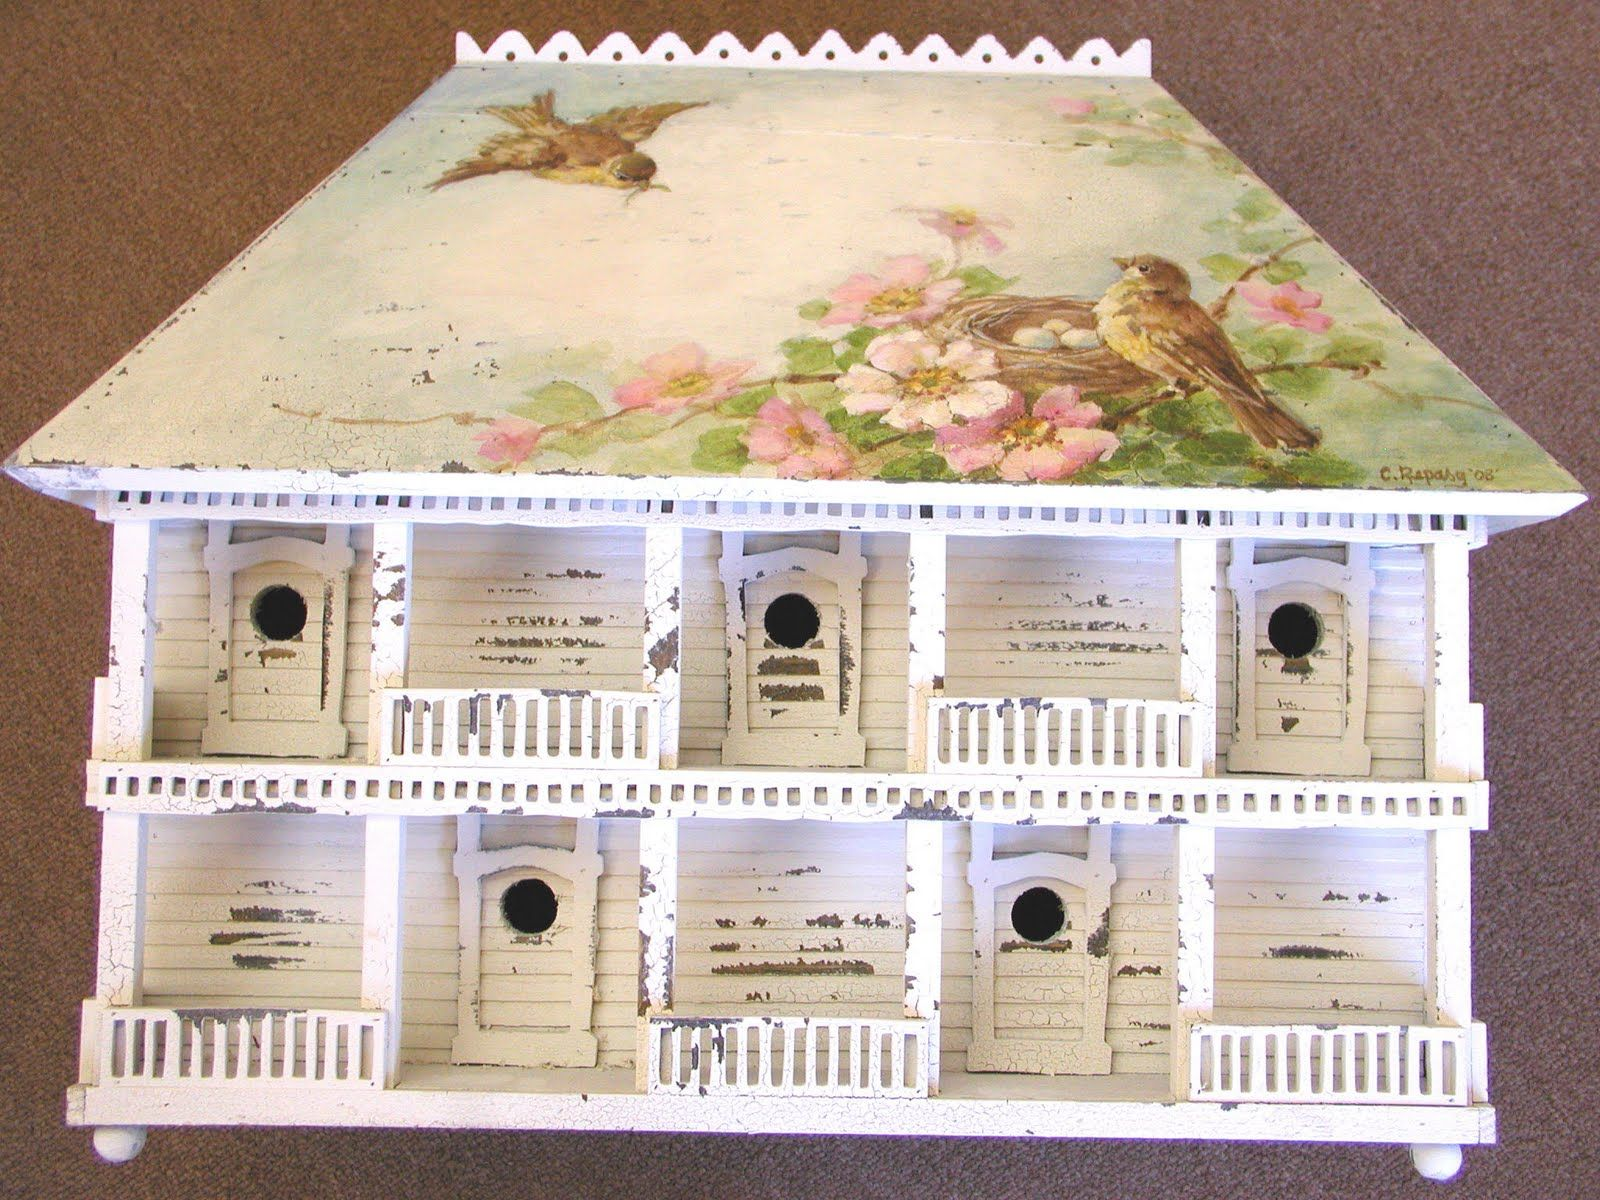 Can you believe it? This exquisite Plantation bird house is by none other than the magnificent Christie Repasy!